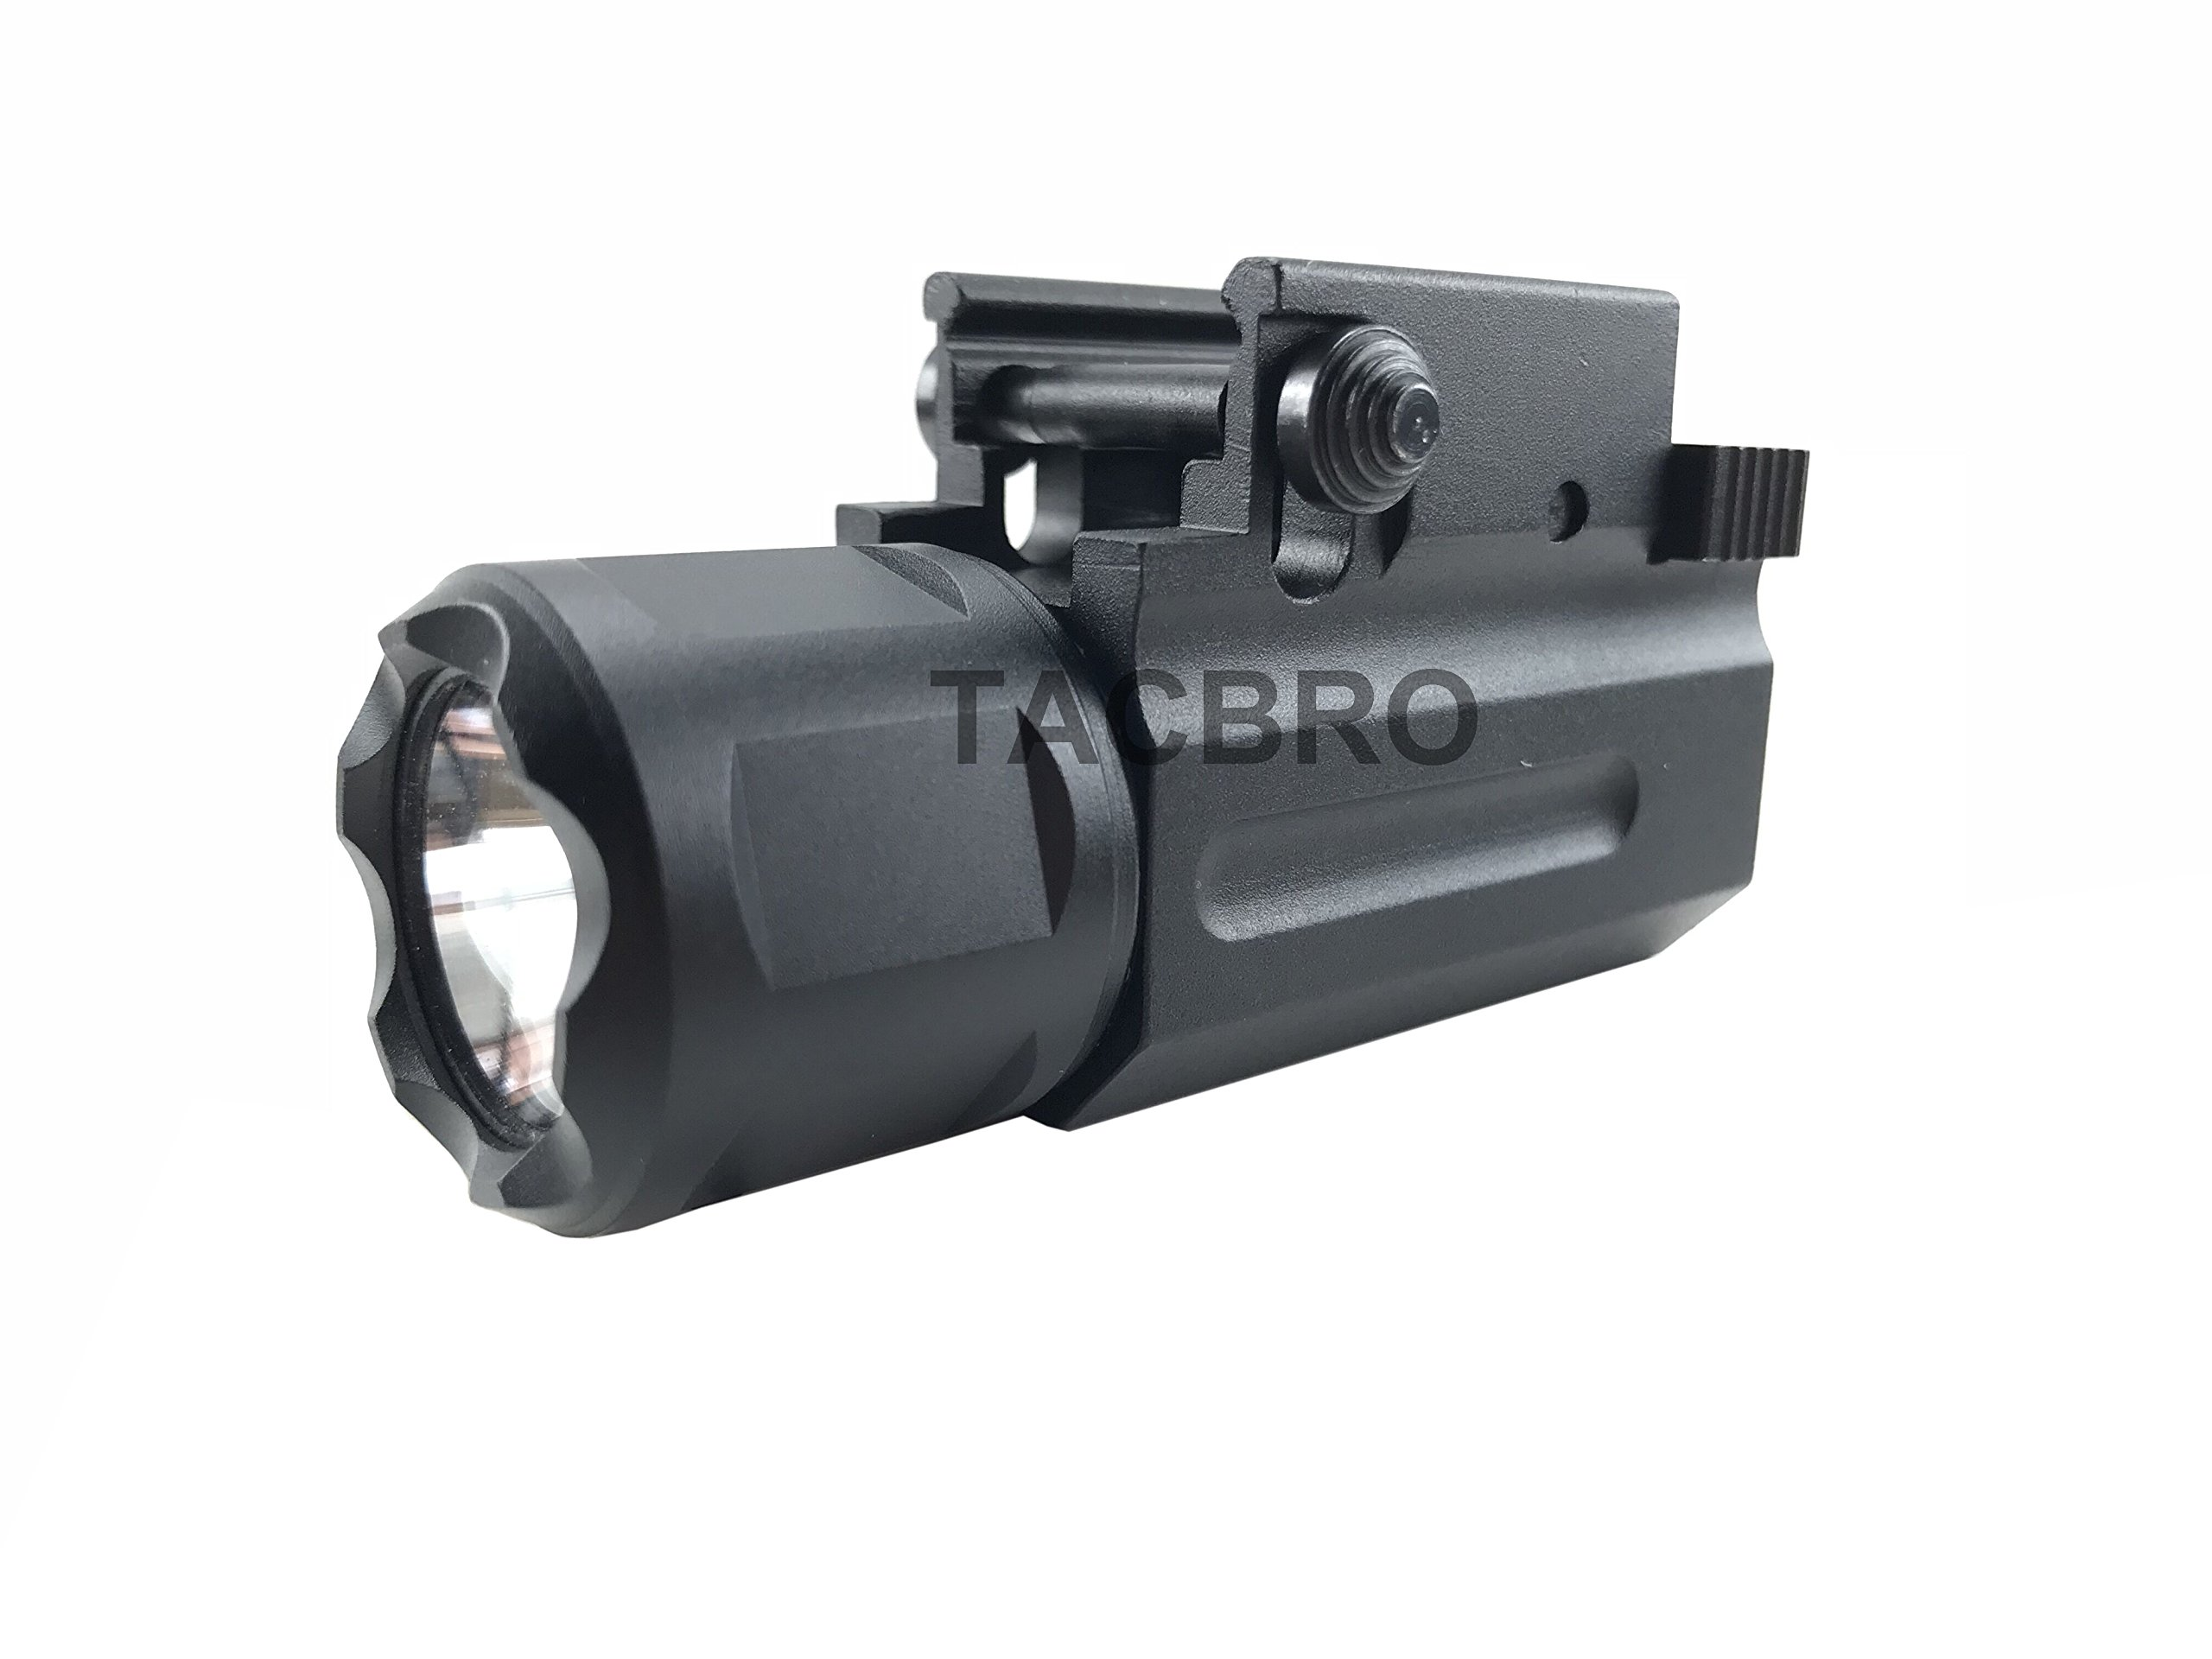 TACBRO Sub-Compact Pistol Flashlight 300 Lumen Quick Release On/Off Switch and QD Exact